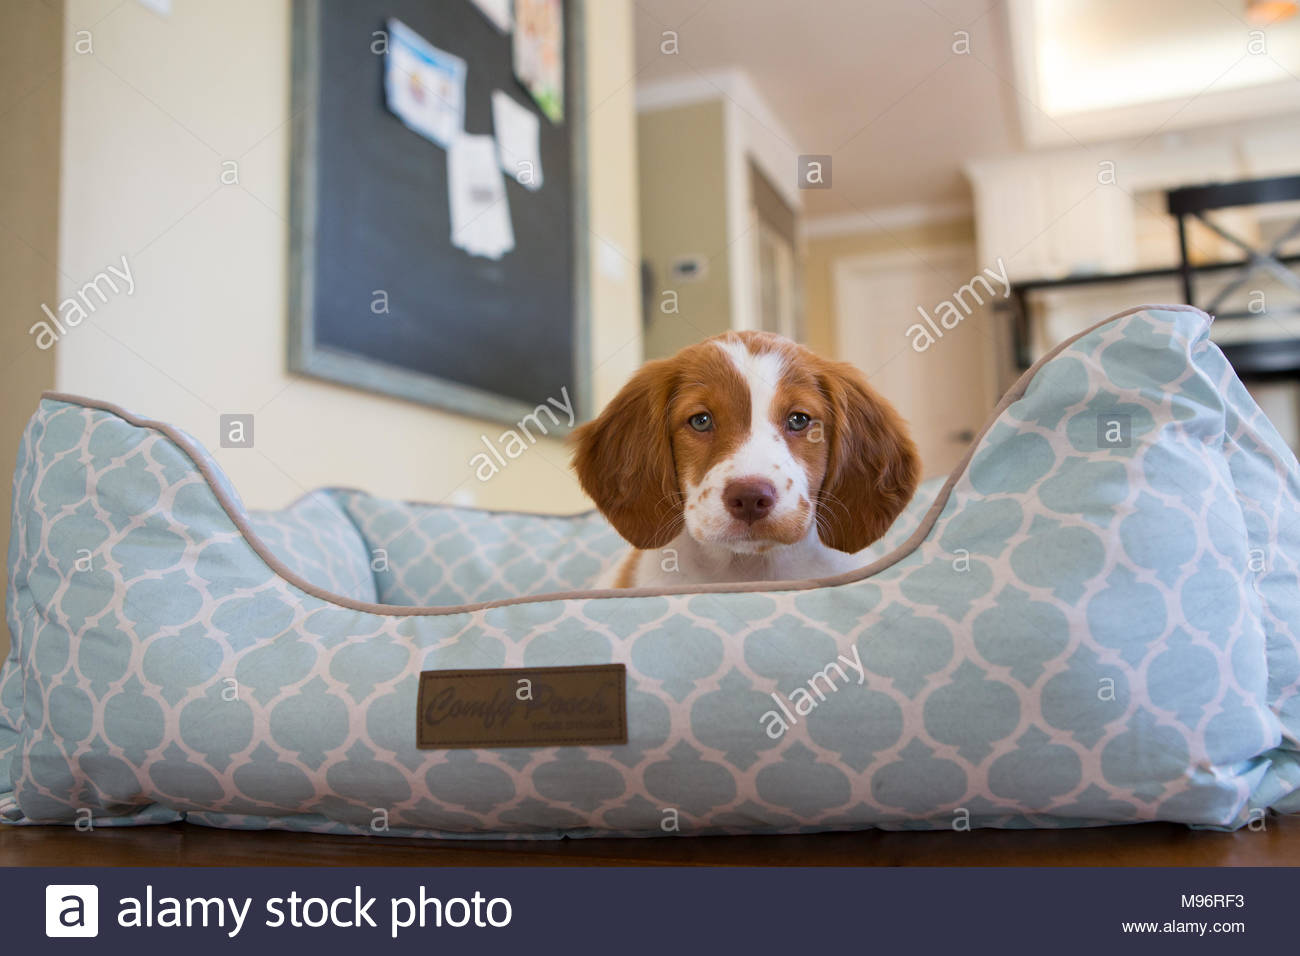 Brown and white brittany spaniel puppy with blue eyes peeking out from a blue and white dog bed - Stock Image